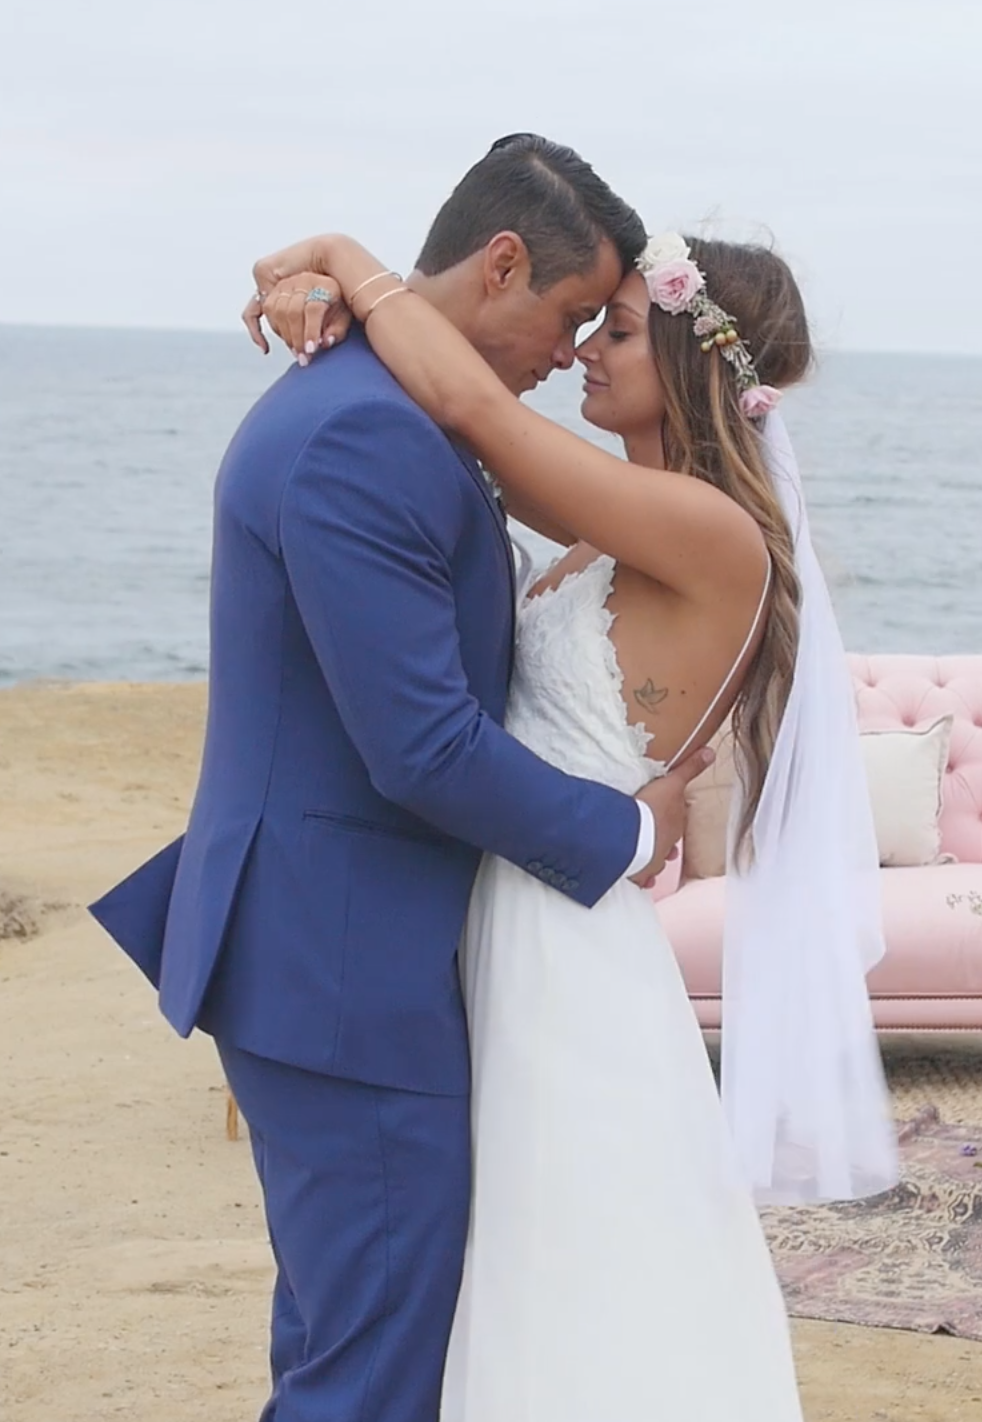 This Love Story Watch Their Wedding Video On Lovestoriestv He Said Was Going To Marry Her Second Date